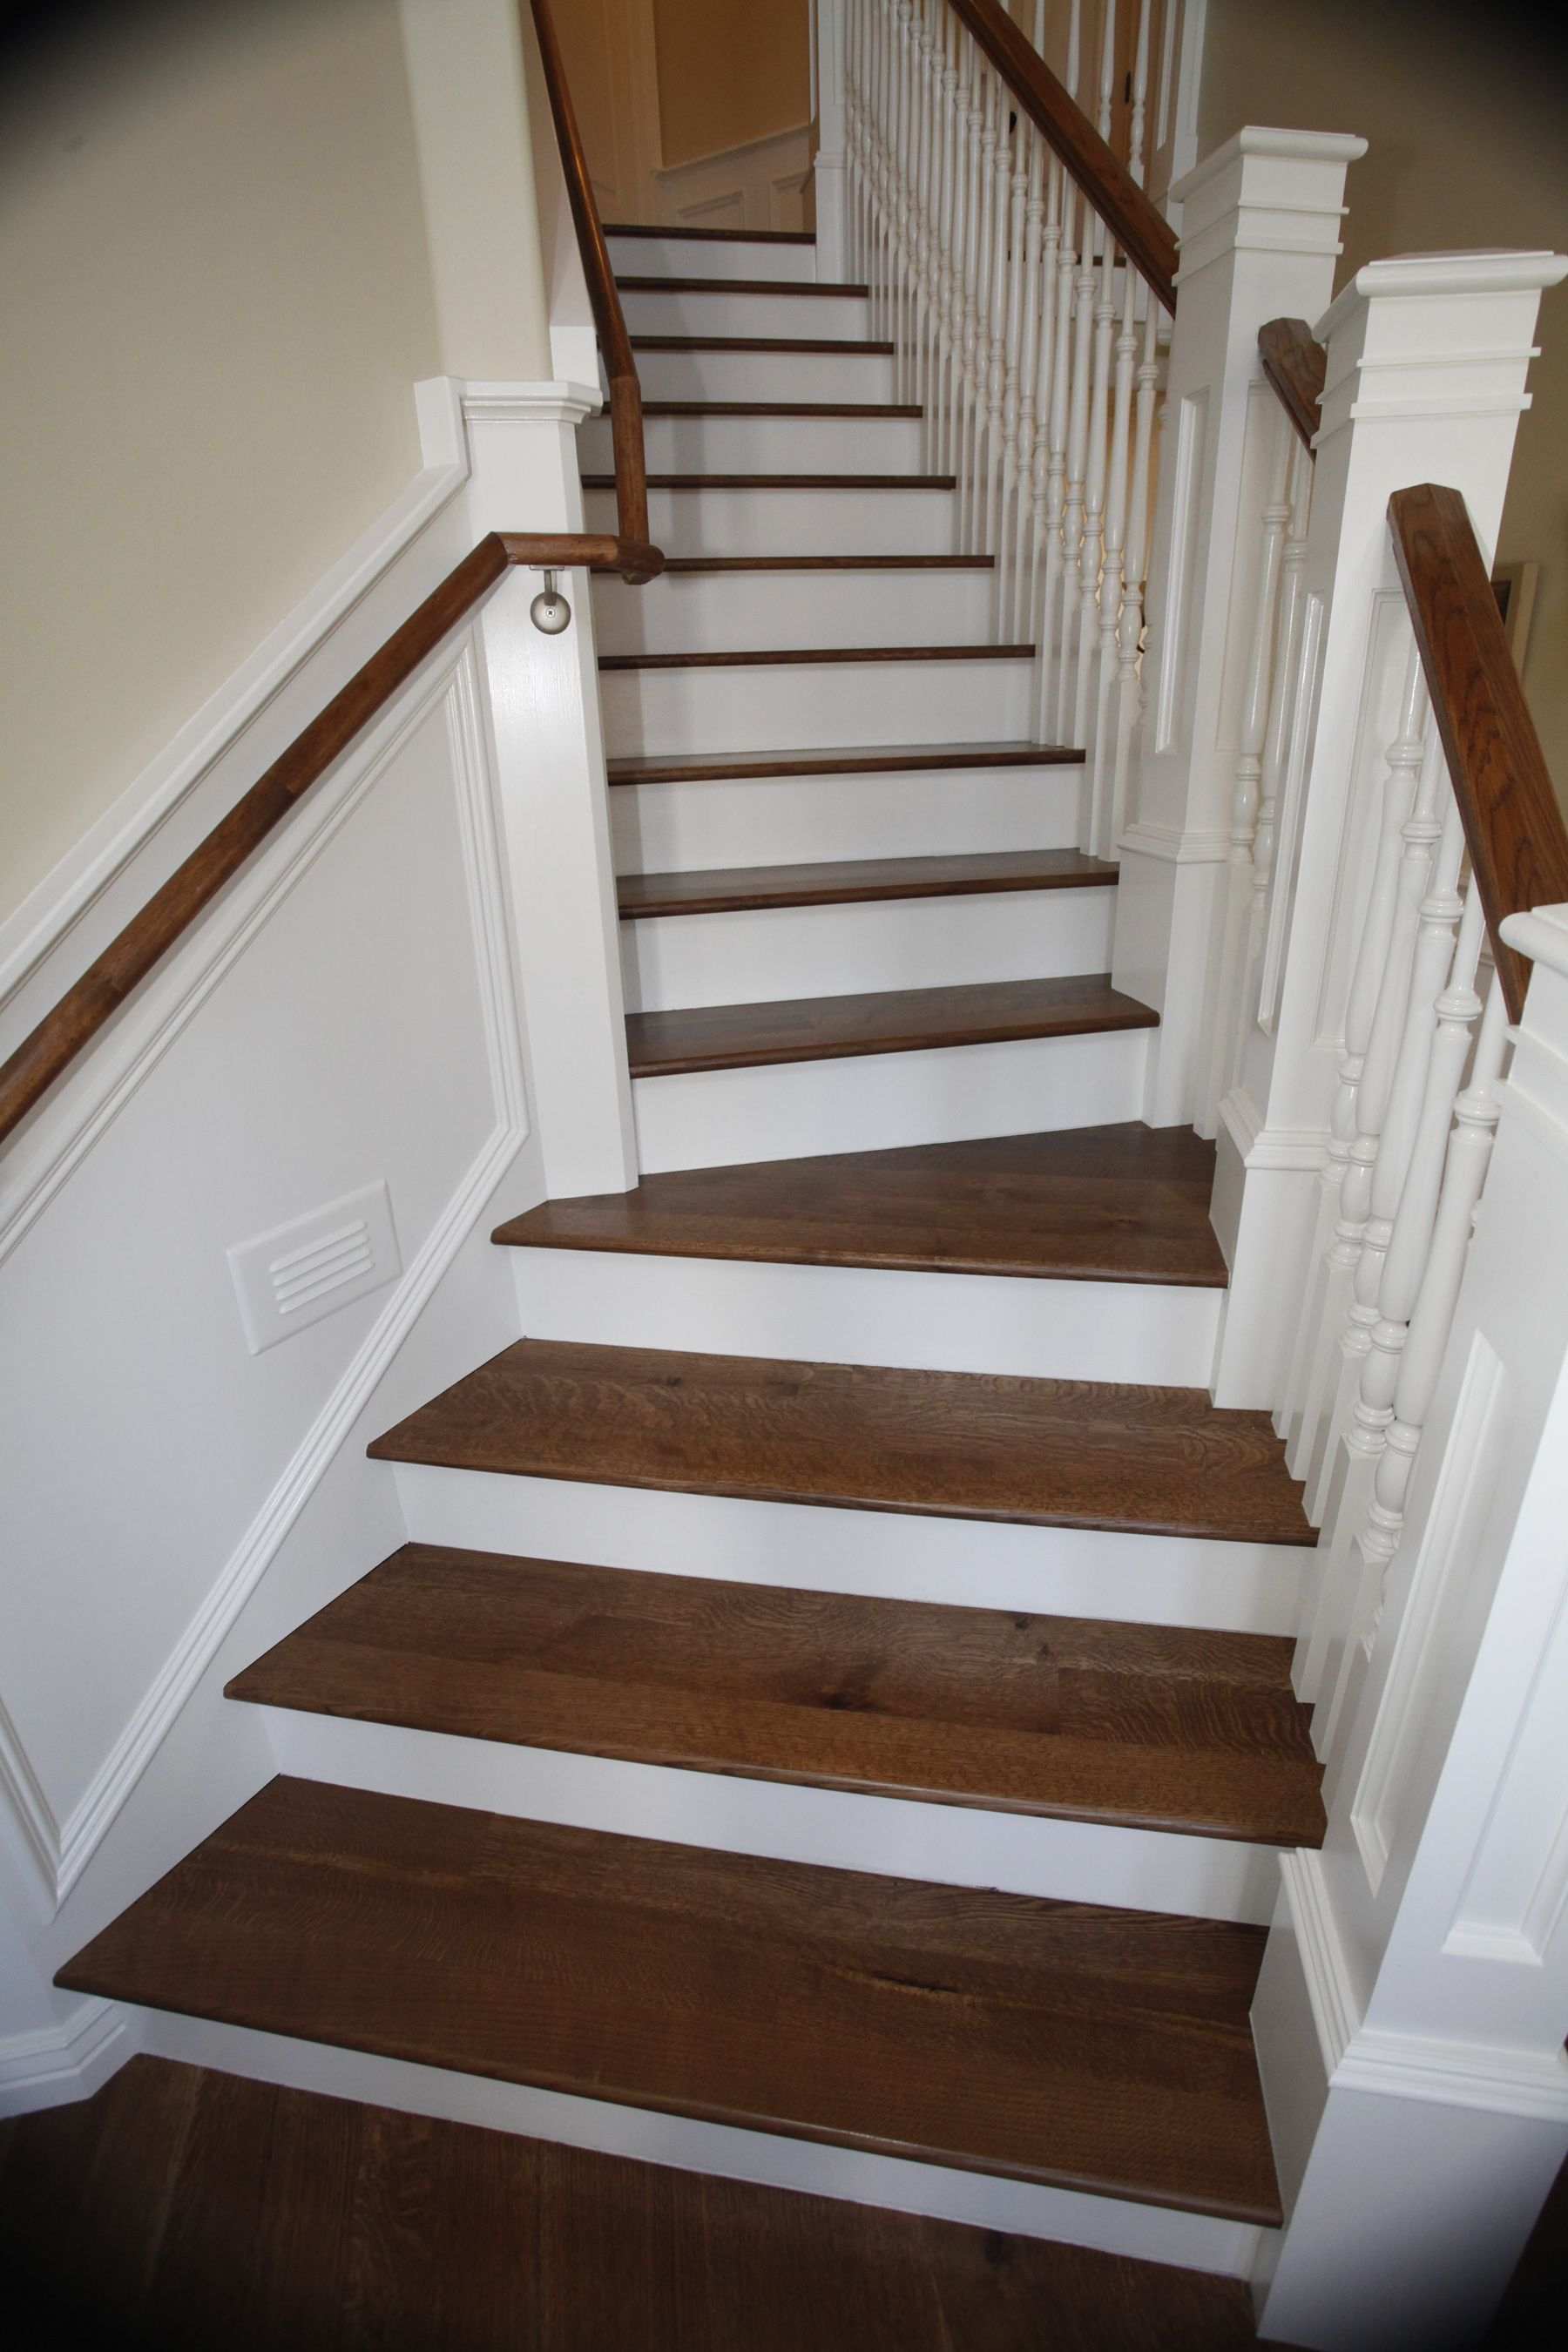 Wood Floor Stairs Pictures Google Search Wood Floor | Carpet Tiles For Steps